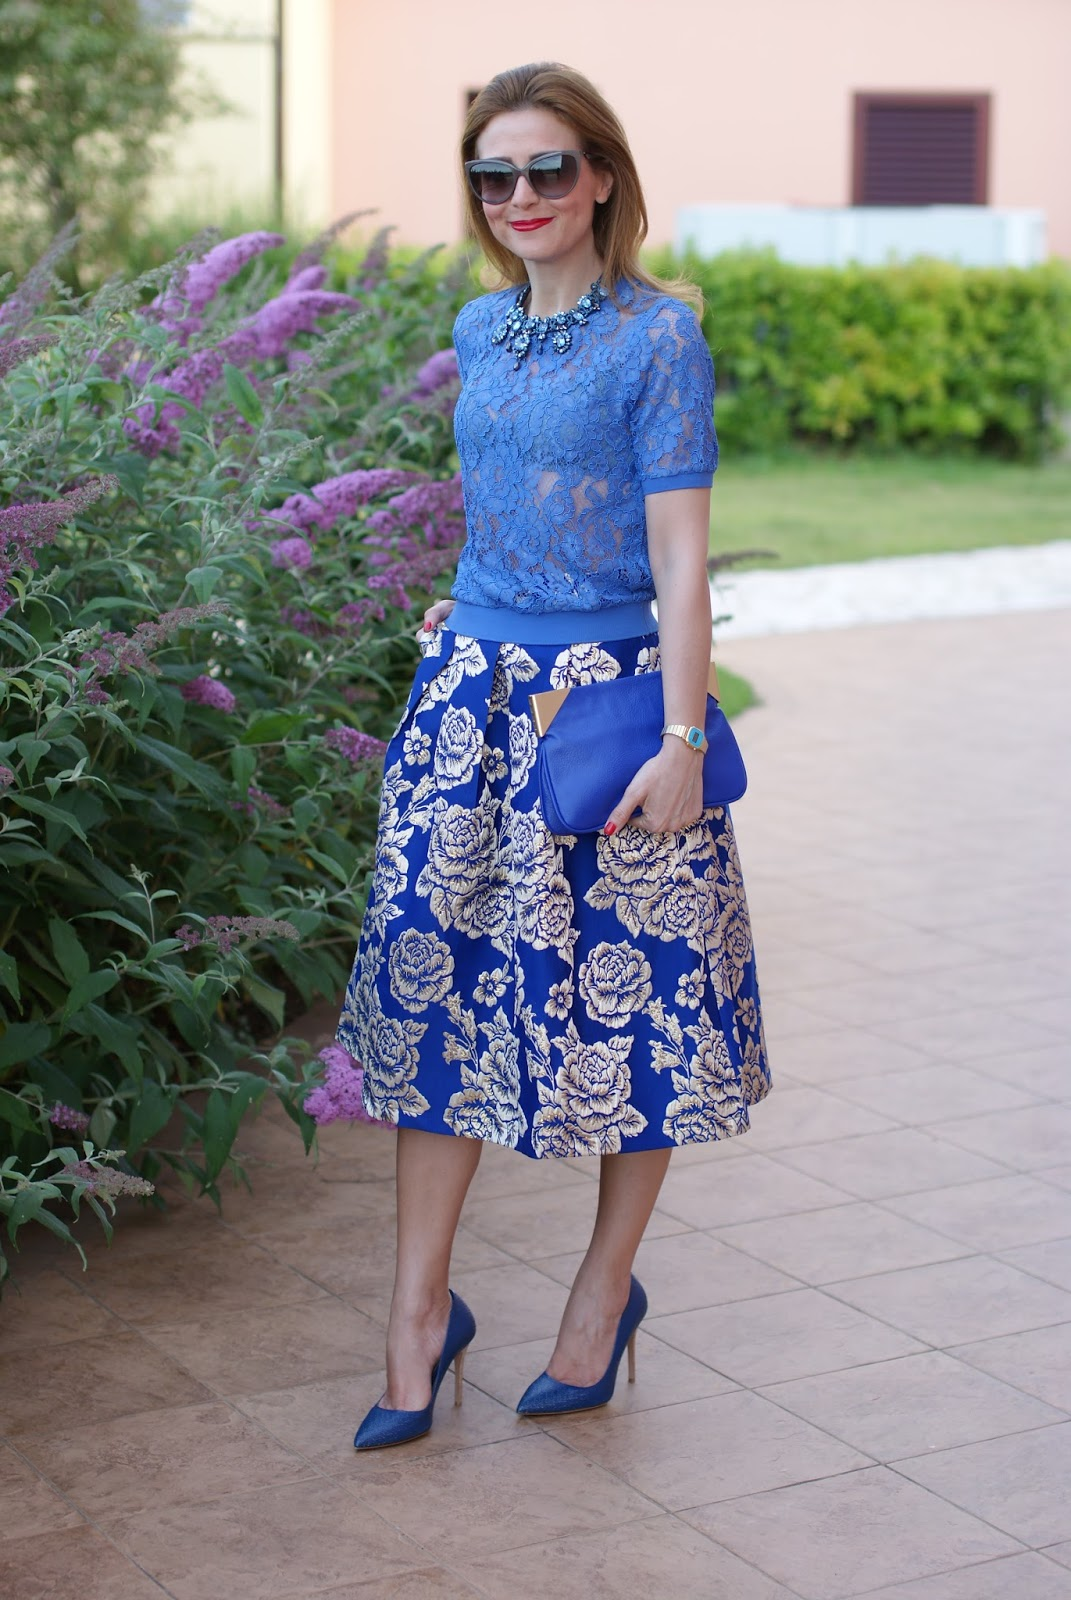 Jacquard midi skirt and see through lace t-shirt on Fashion and Cookies fashion blog, fashion blogger style